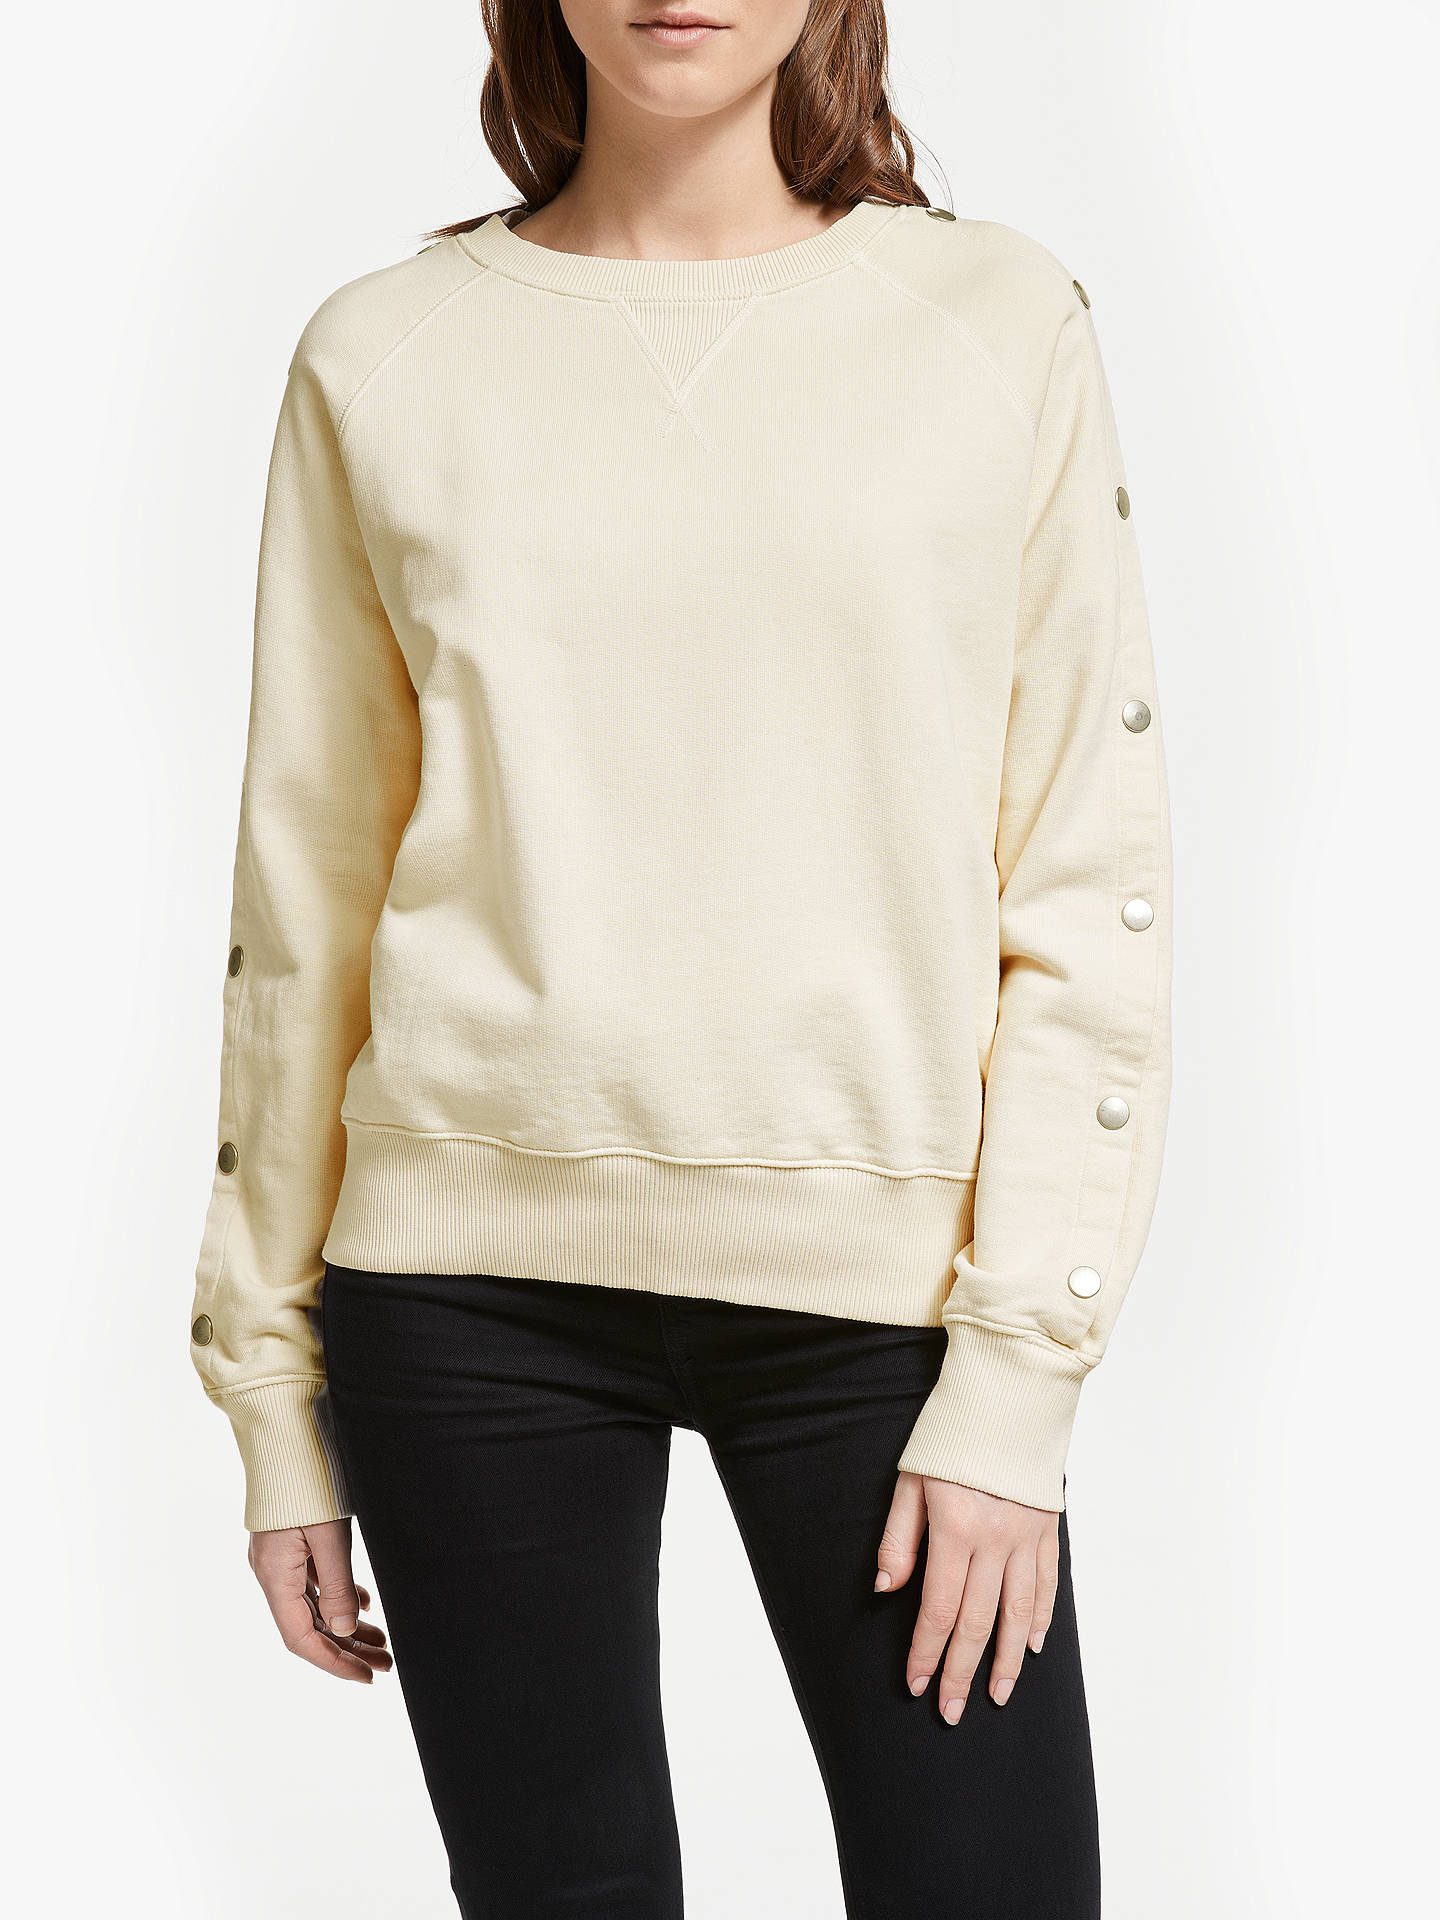 BuyIden Snap Up Sleeve Sweatshirt, Ivory White, XS Online at johnlewis.com